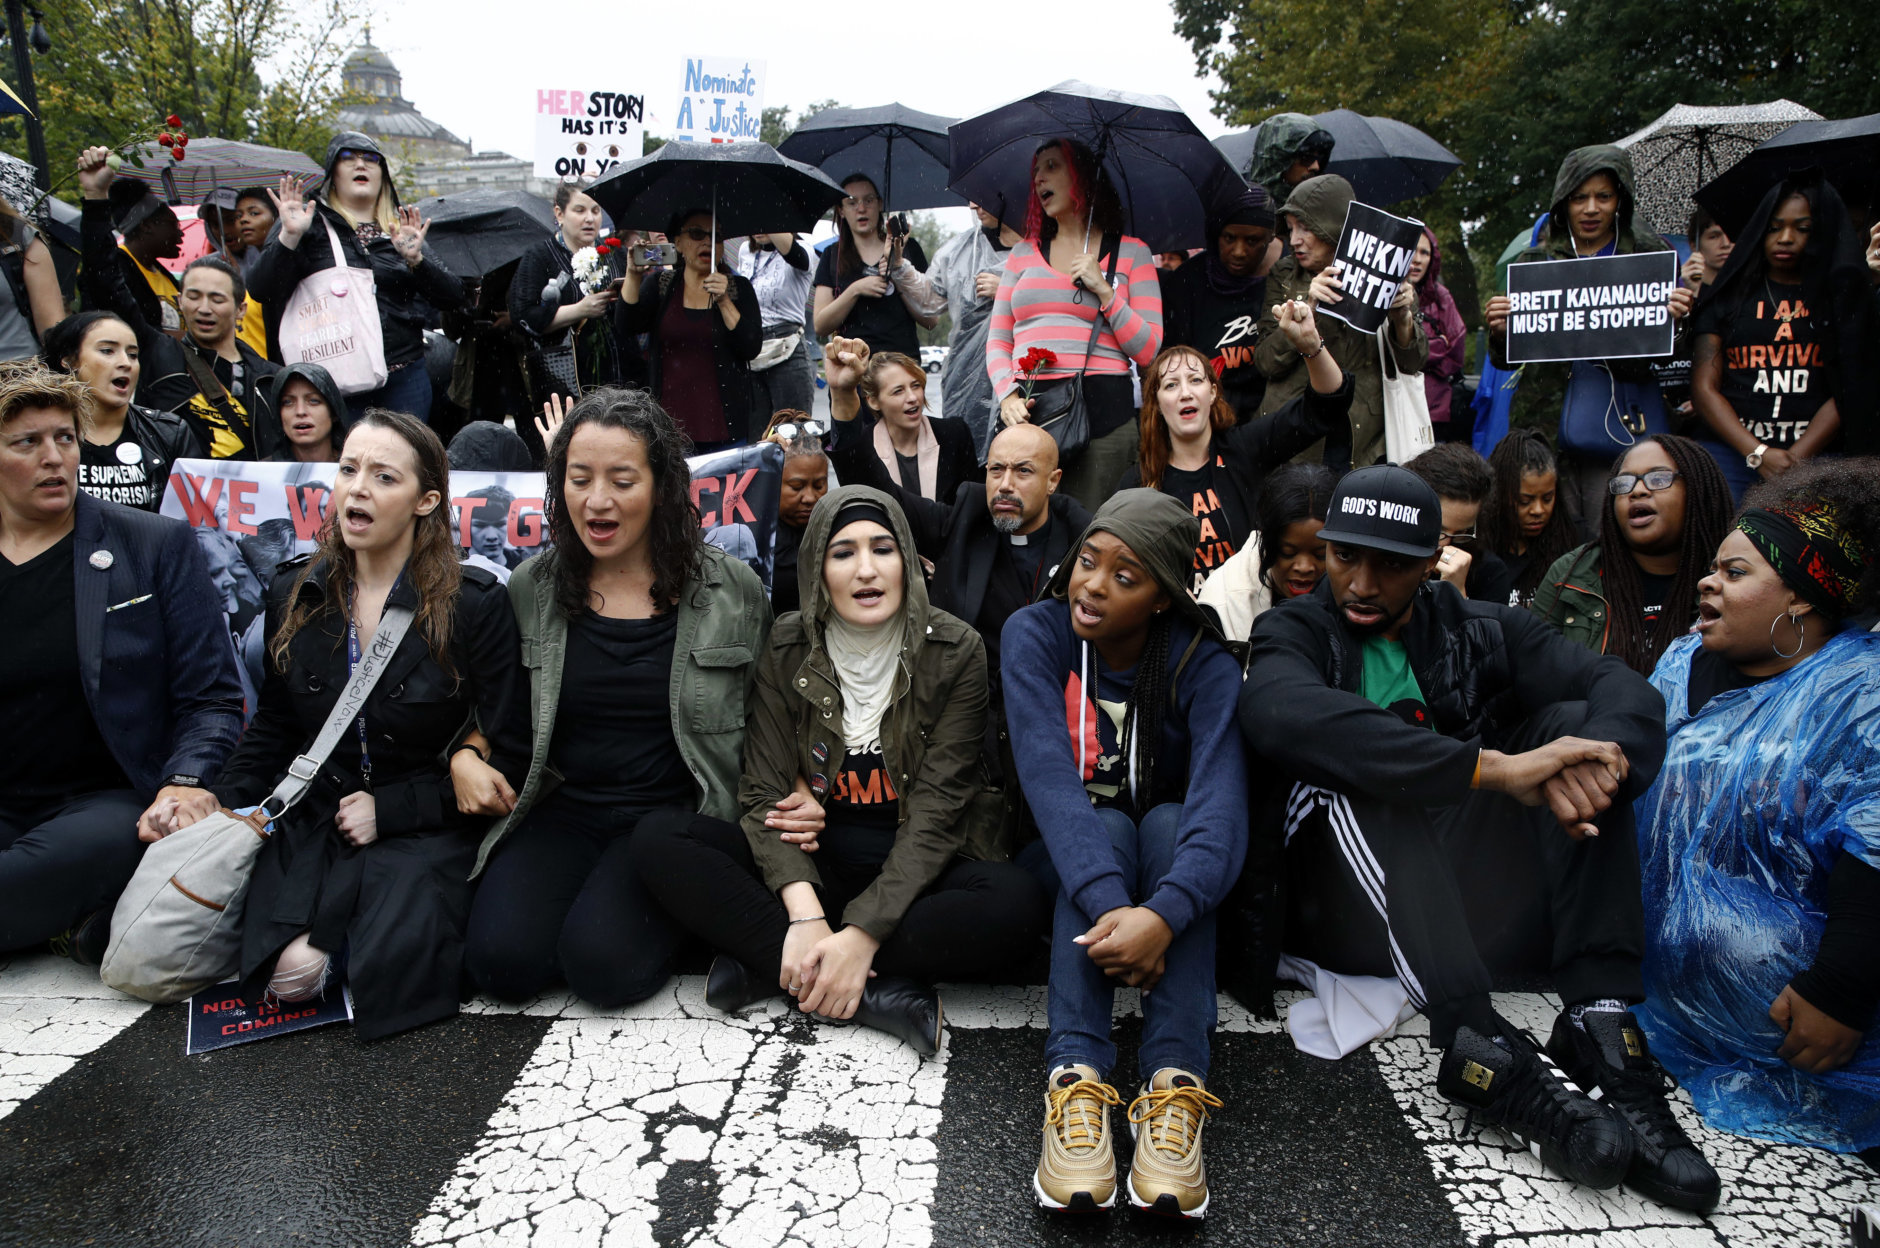 Protesters opposing Supreme Court nominee Brett Kavanaugh sit on a street between the Supreme Court and the U.S. Capitol on Capitol Hill in Washington, Thursday, Sept. 27, 2018. (AP Photo/Patrick Semansky)